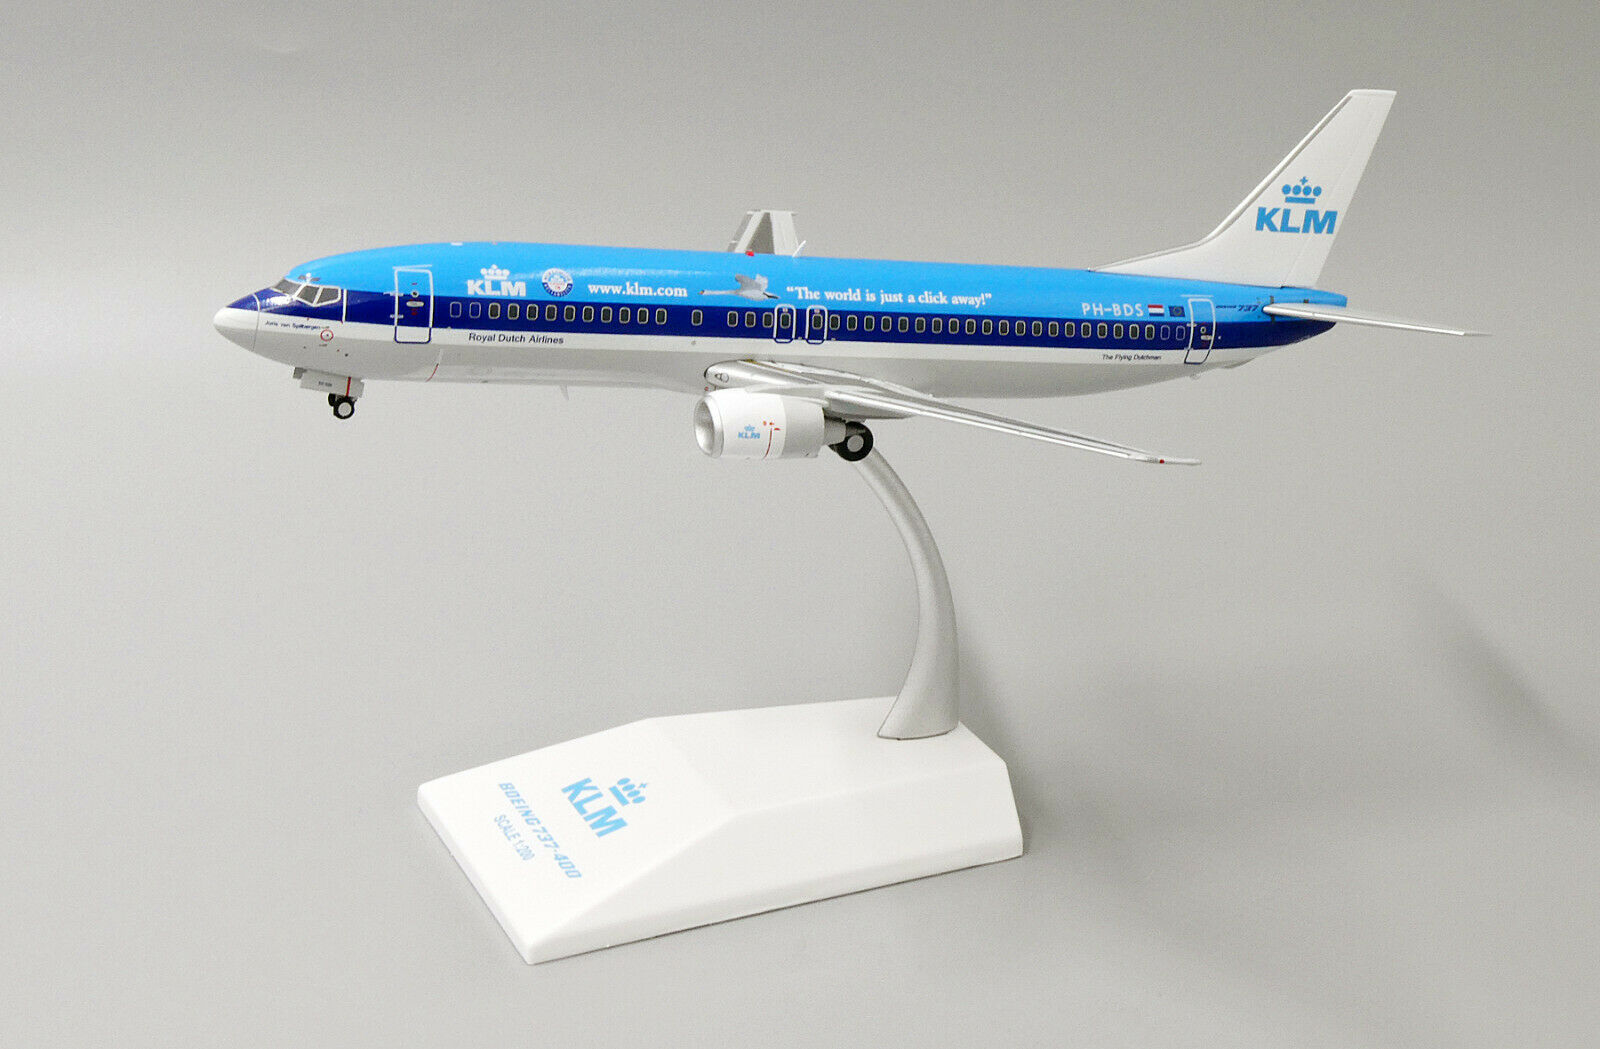 JC2055 1 200 KLM ROYAL DUTCH AIRLINES B737-400 PH-BDS Welt IS JUST A CLICK AWAY